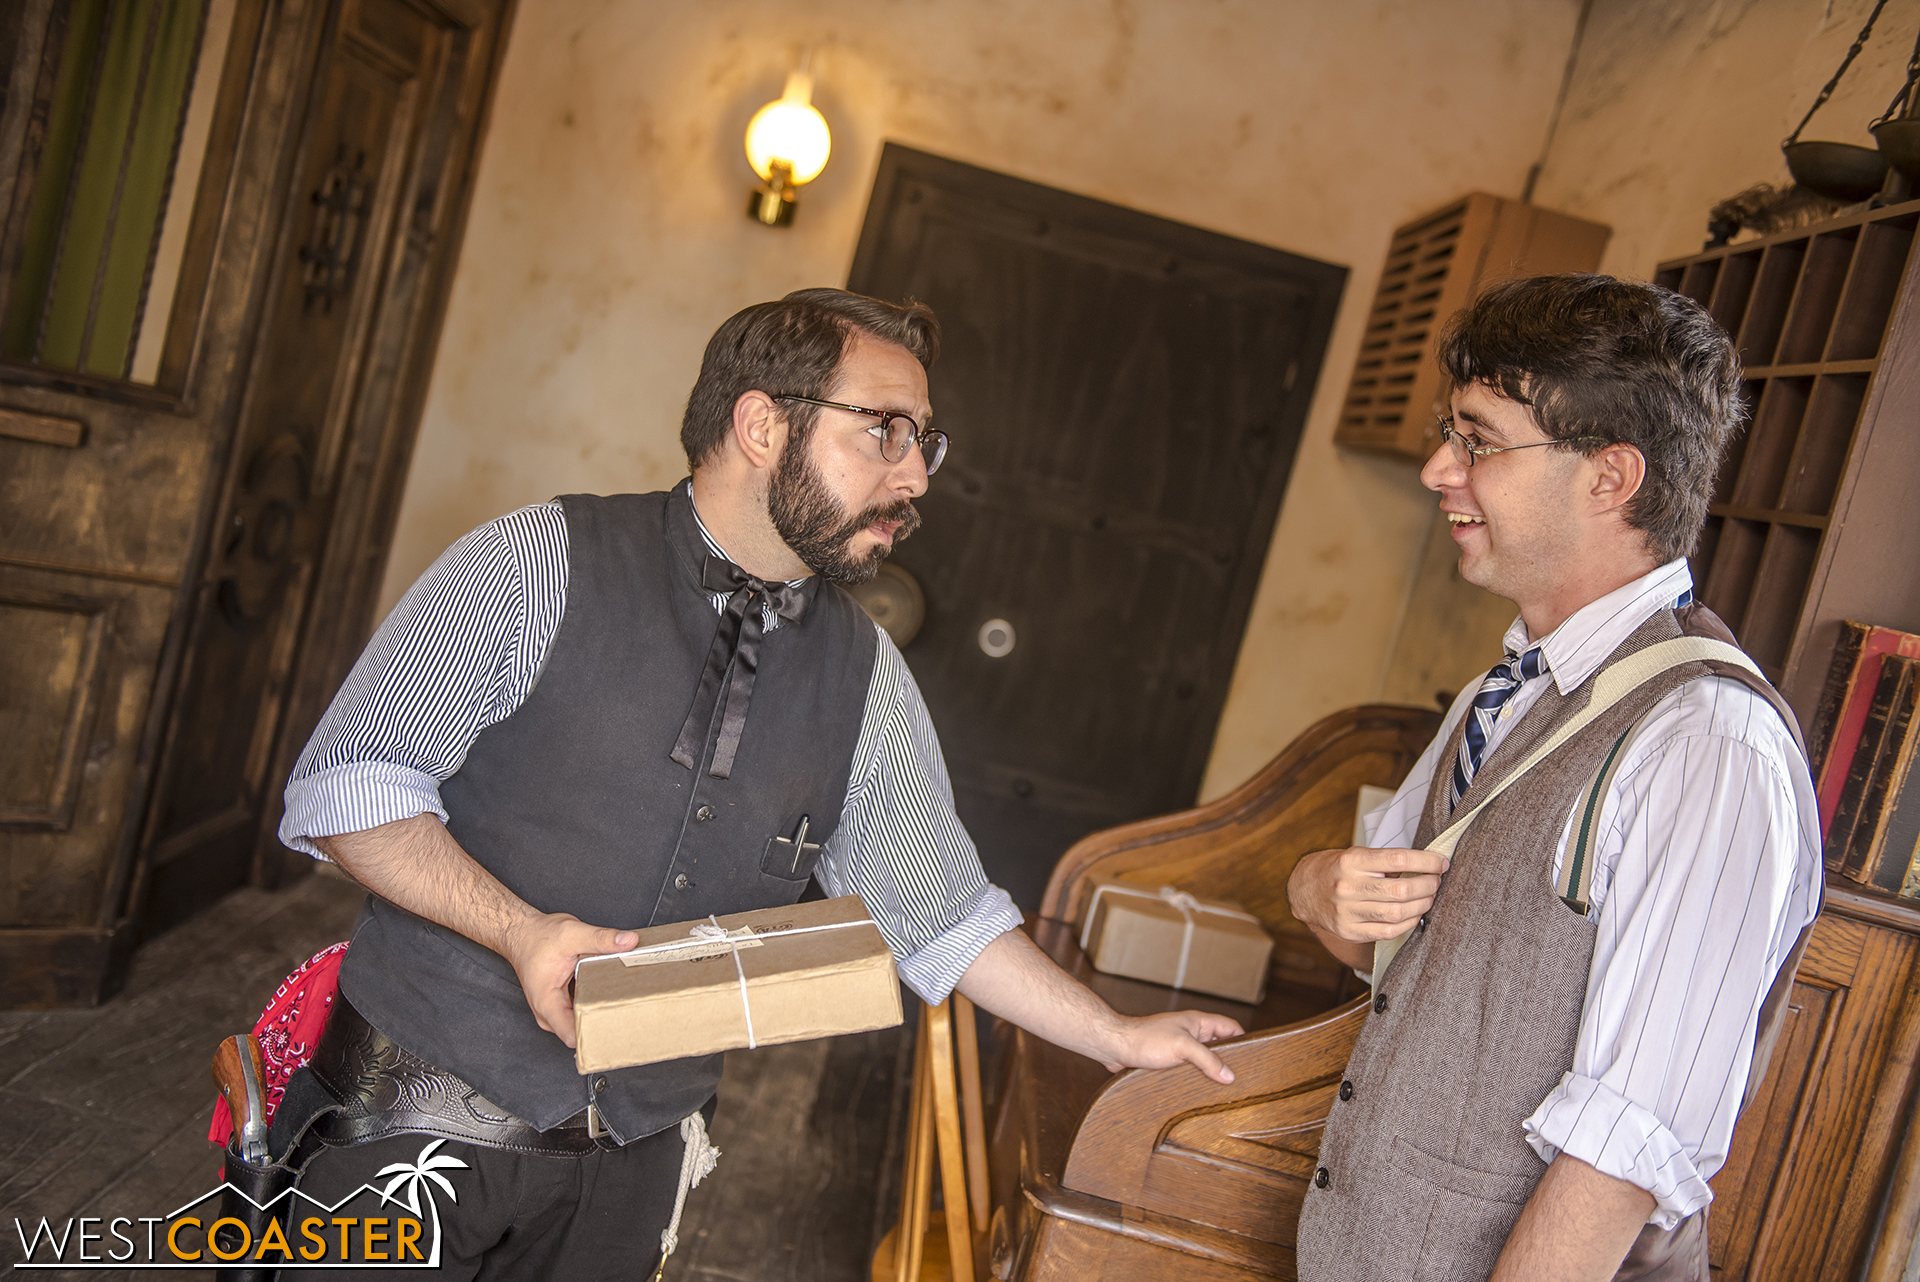 Bank guard Antonio asks a guest to deliver a package to another Citizen of Calico.